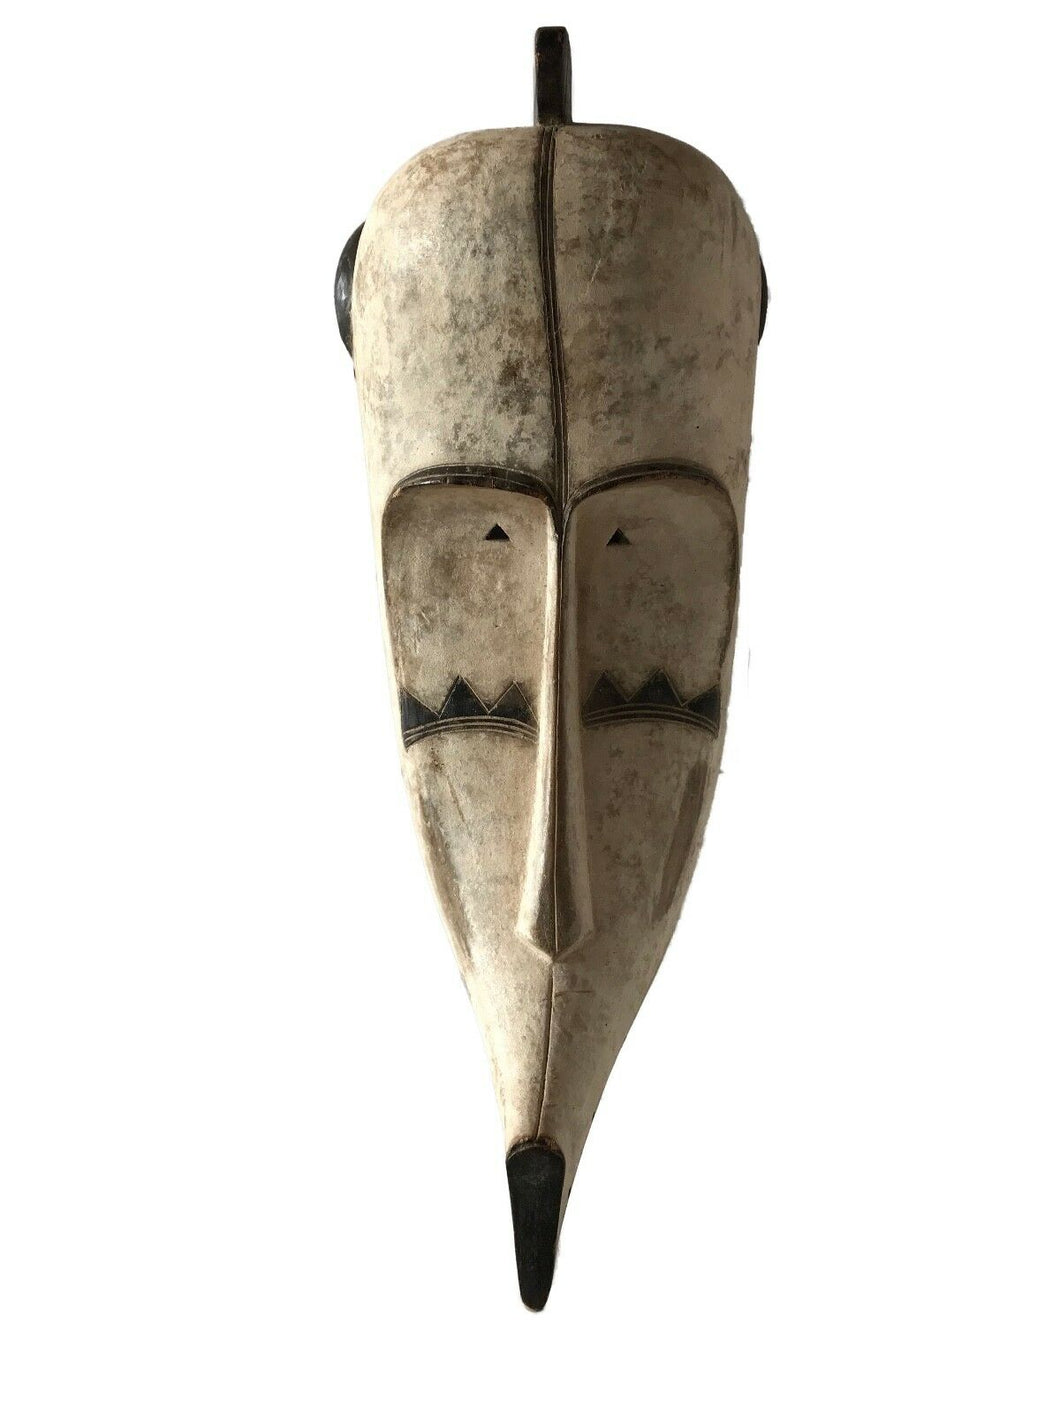 #1334 Lg Fang Mask Elongated Face Gabon African Mask 28.5